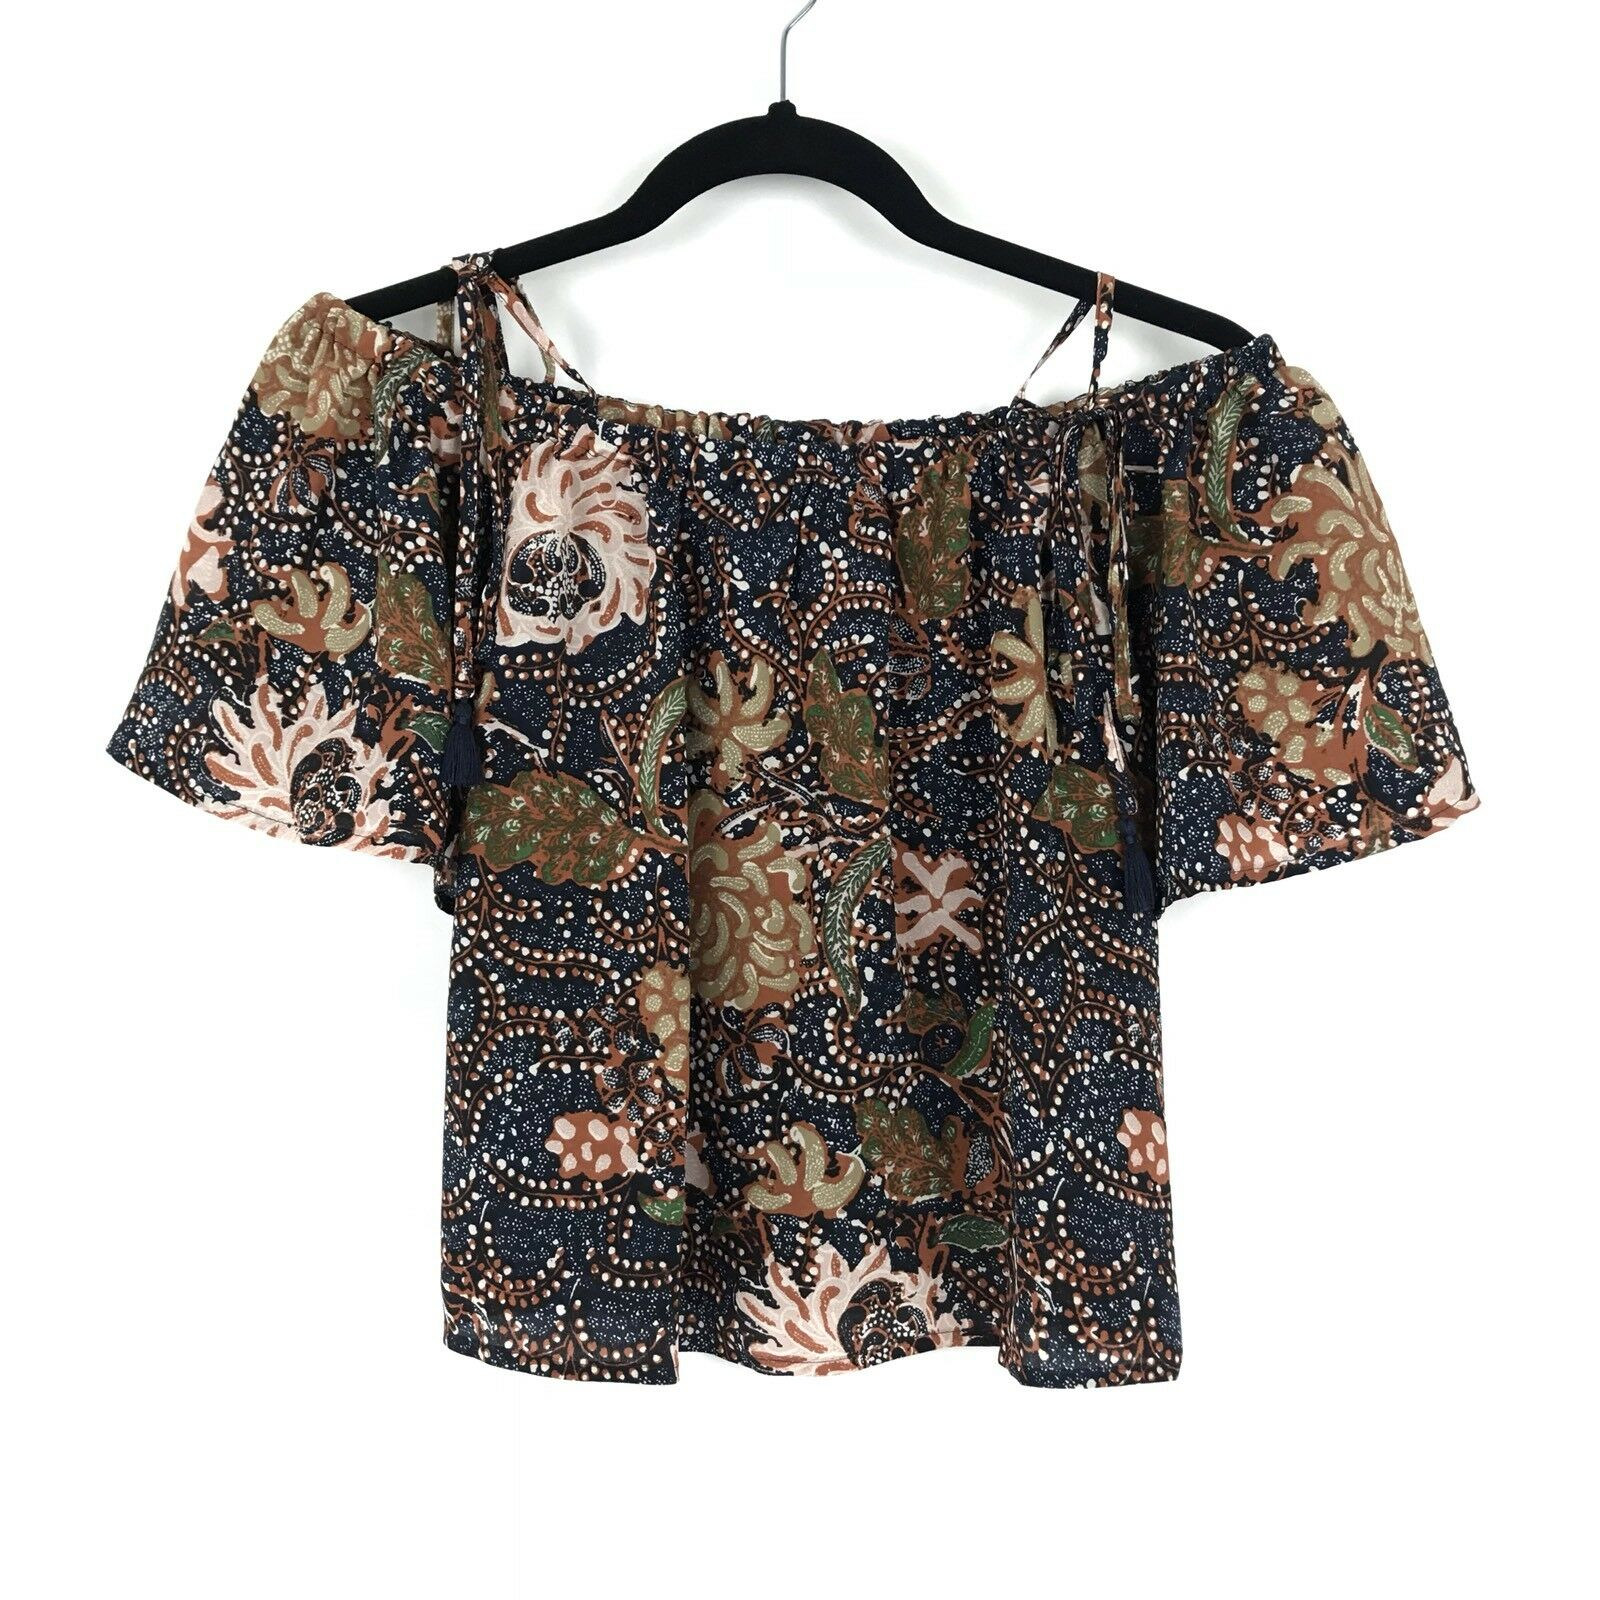 Madewell Womens Size XS Silk Cold Shoulder Top Sea Floral Print Multicolor NEW